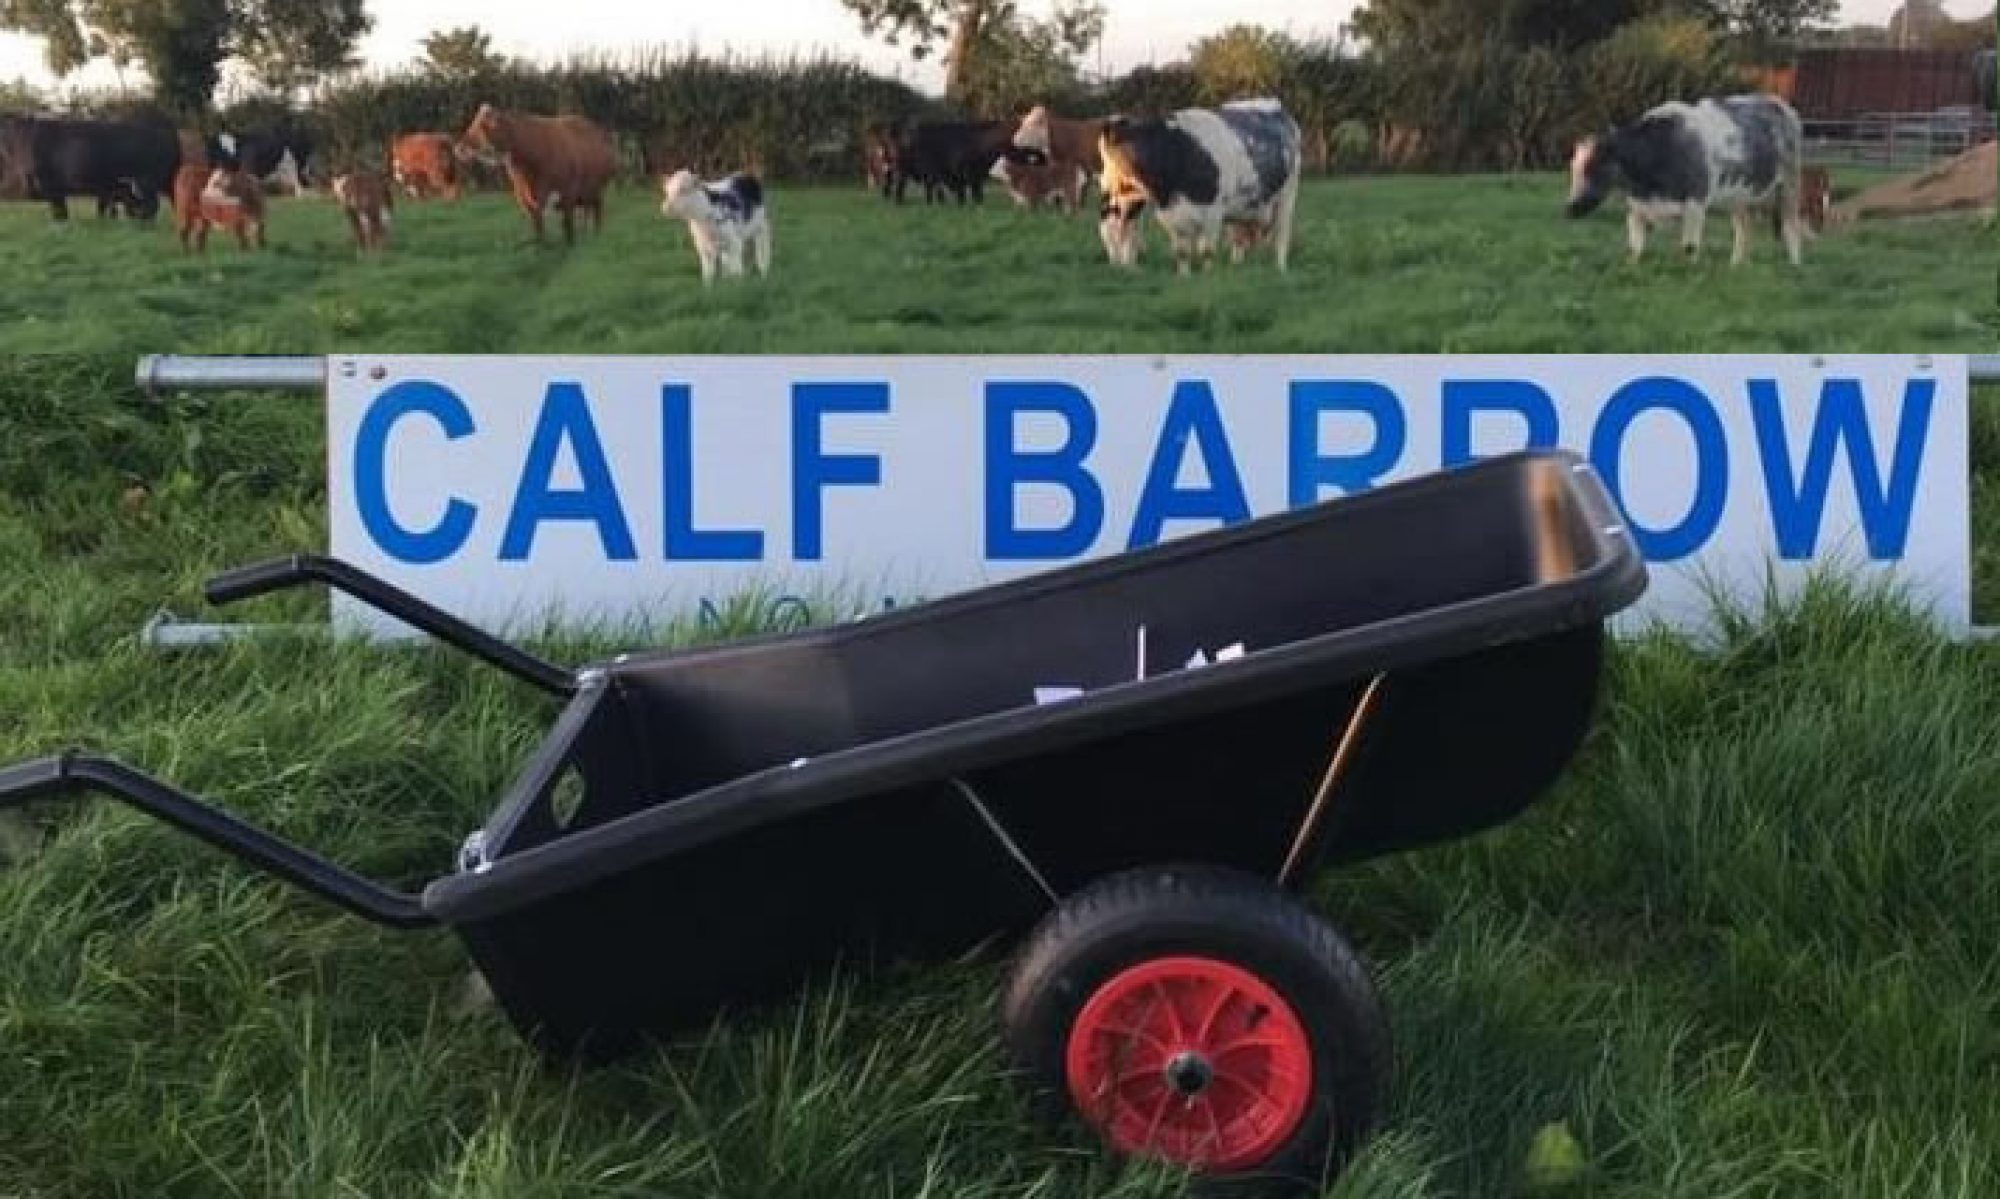 Calf Barrow UK